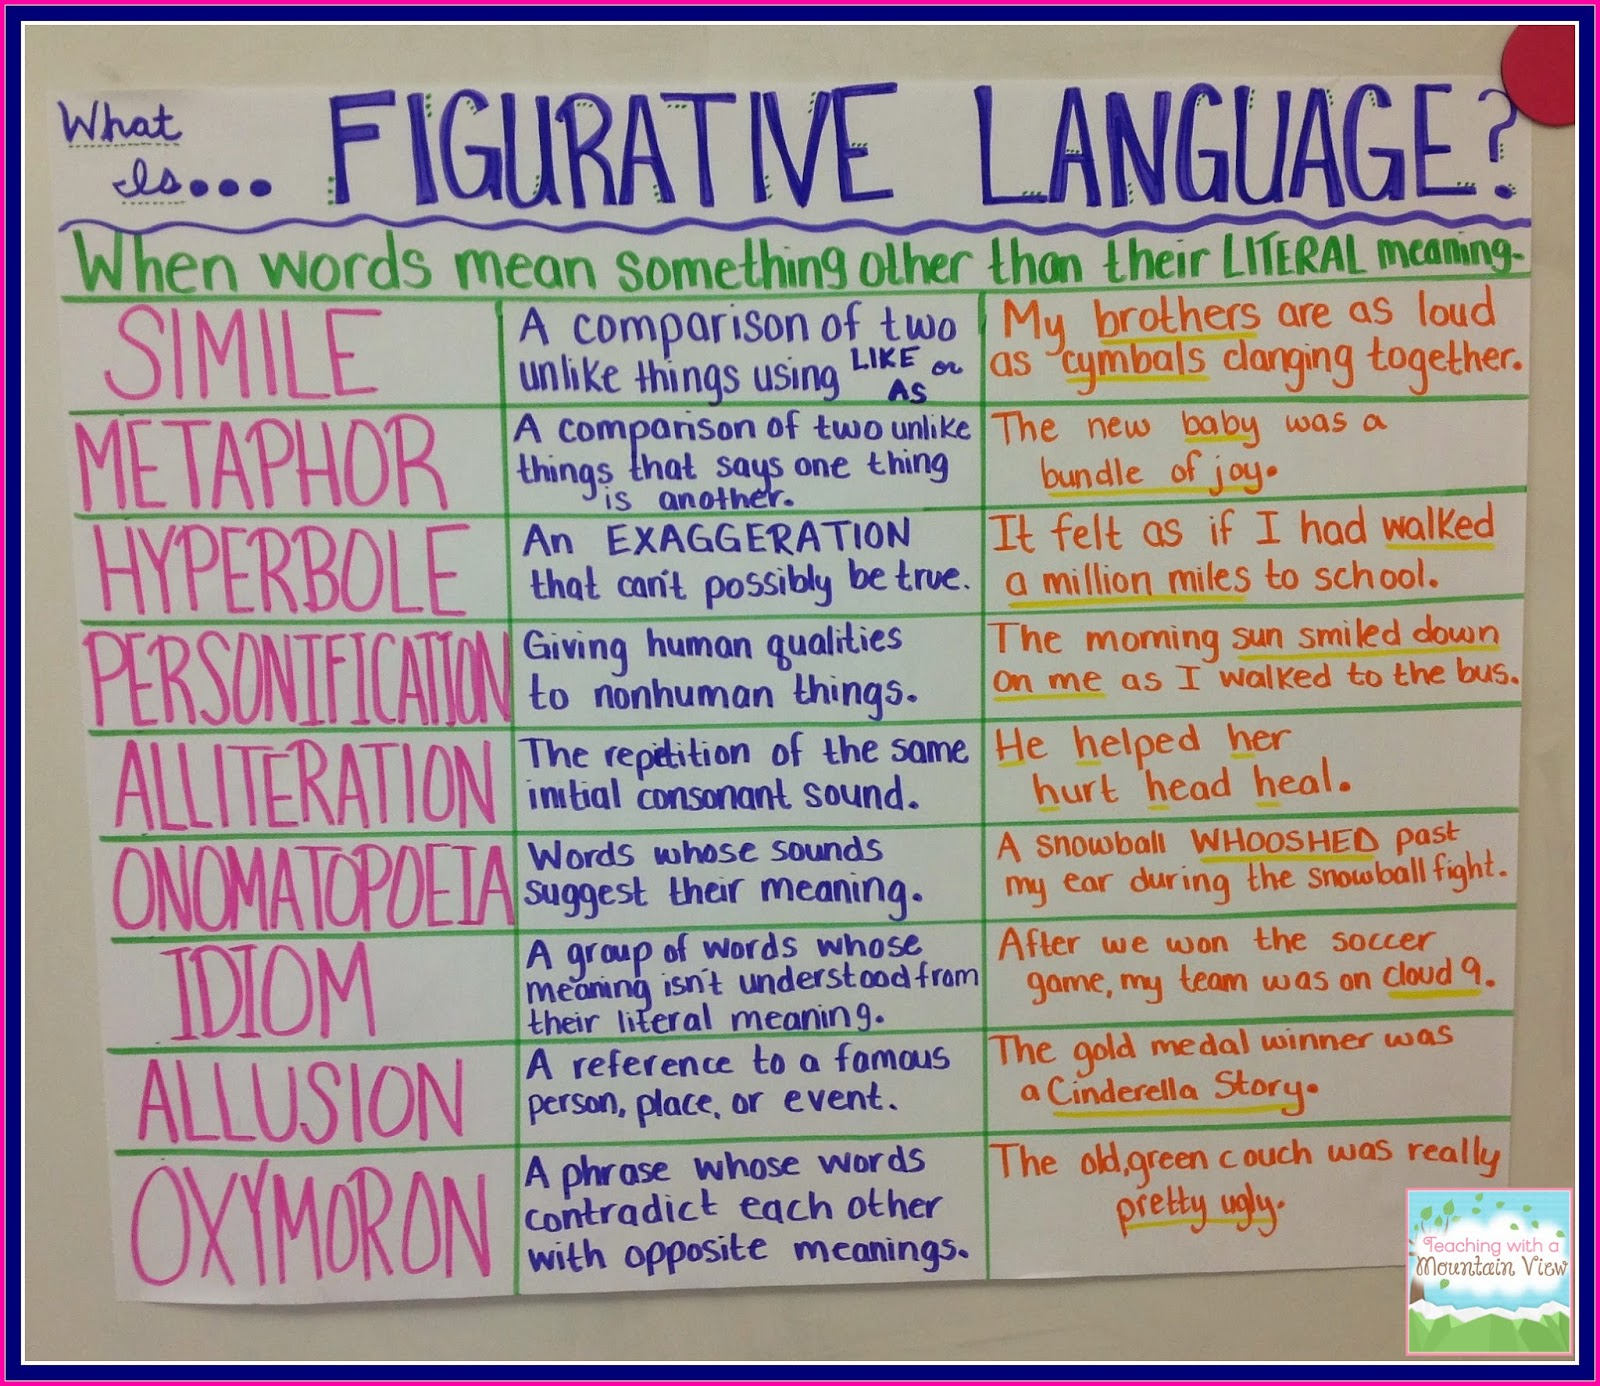 Figurative language essay prompts